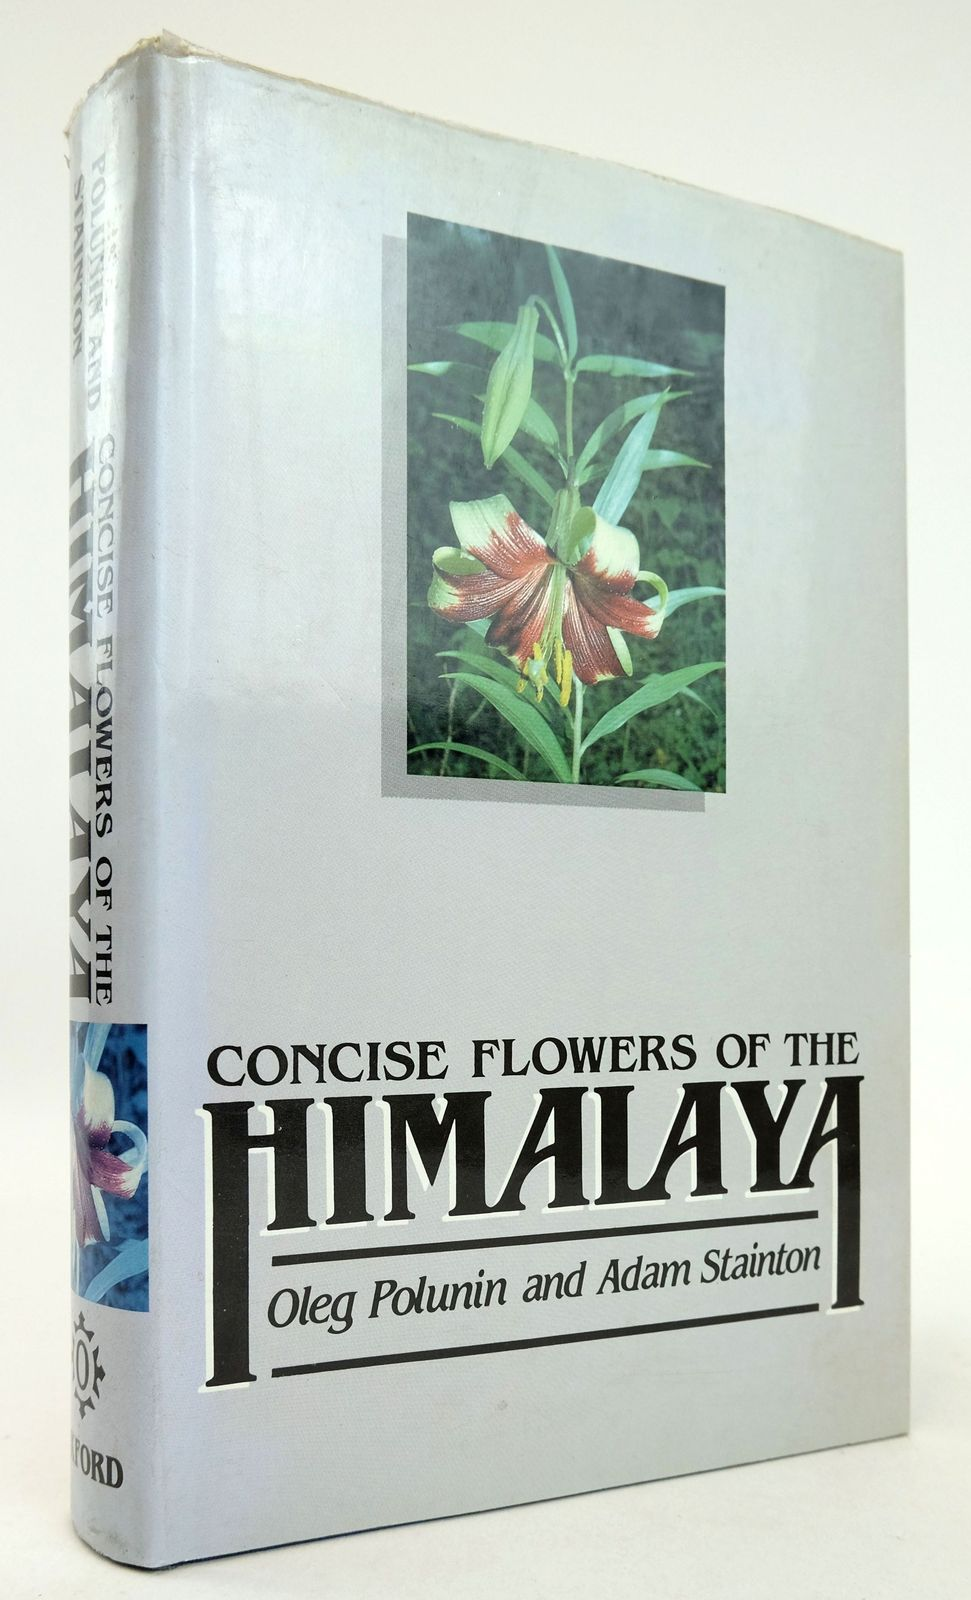 Photo of CONCISE FLOWERS OF THE HIMALAYA written by Polunin, Oleg Stainton, Adam illustrated by Farrer, Ann published by Oxford University Press (STOCK CODE: 1819251)  for sale by Stella & Rose's Books